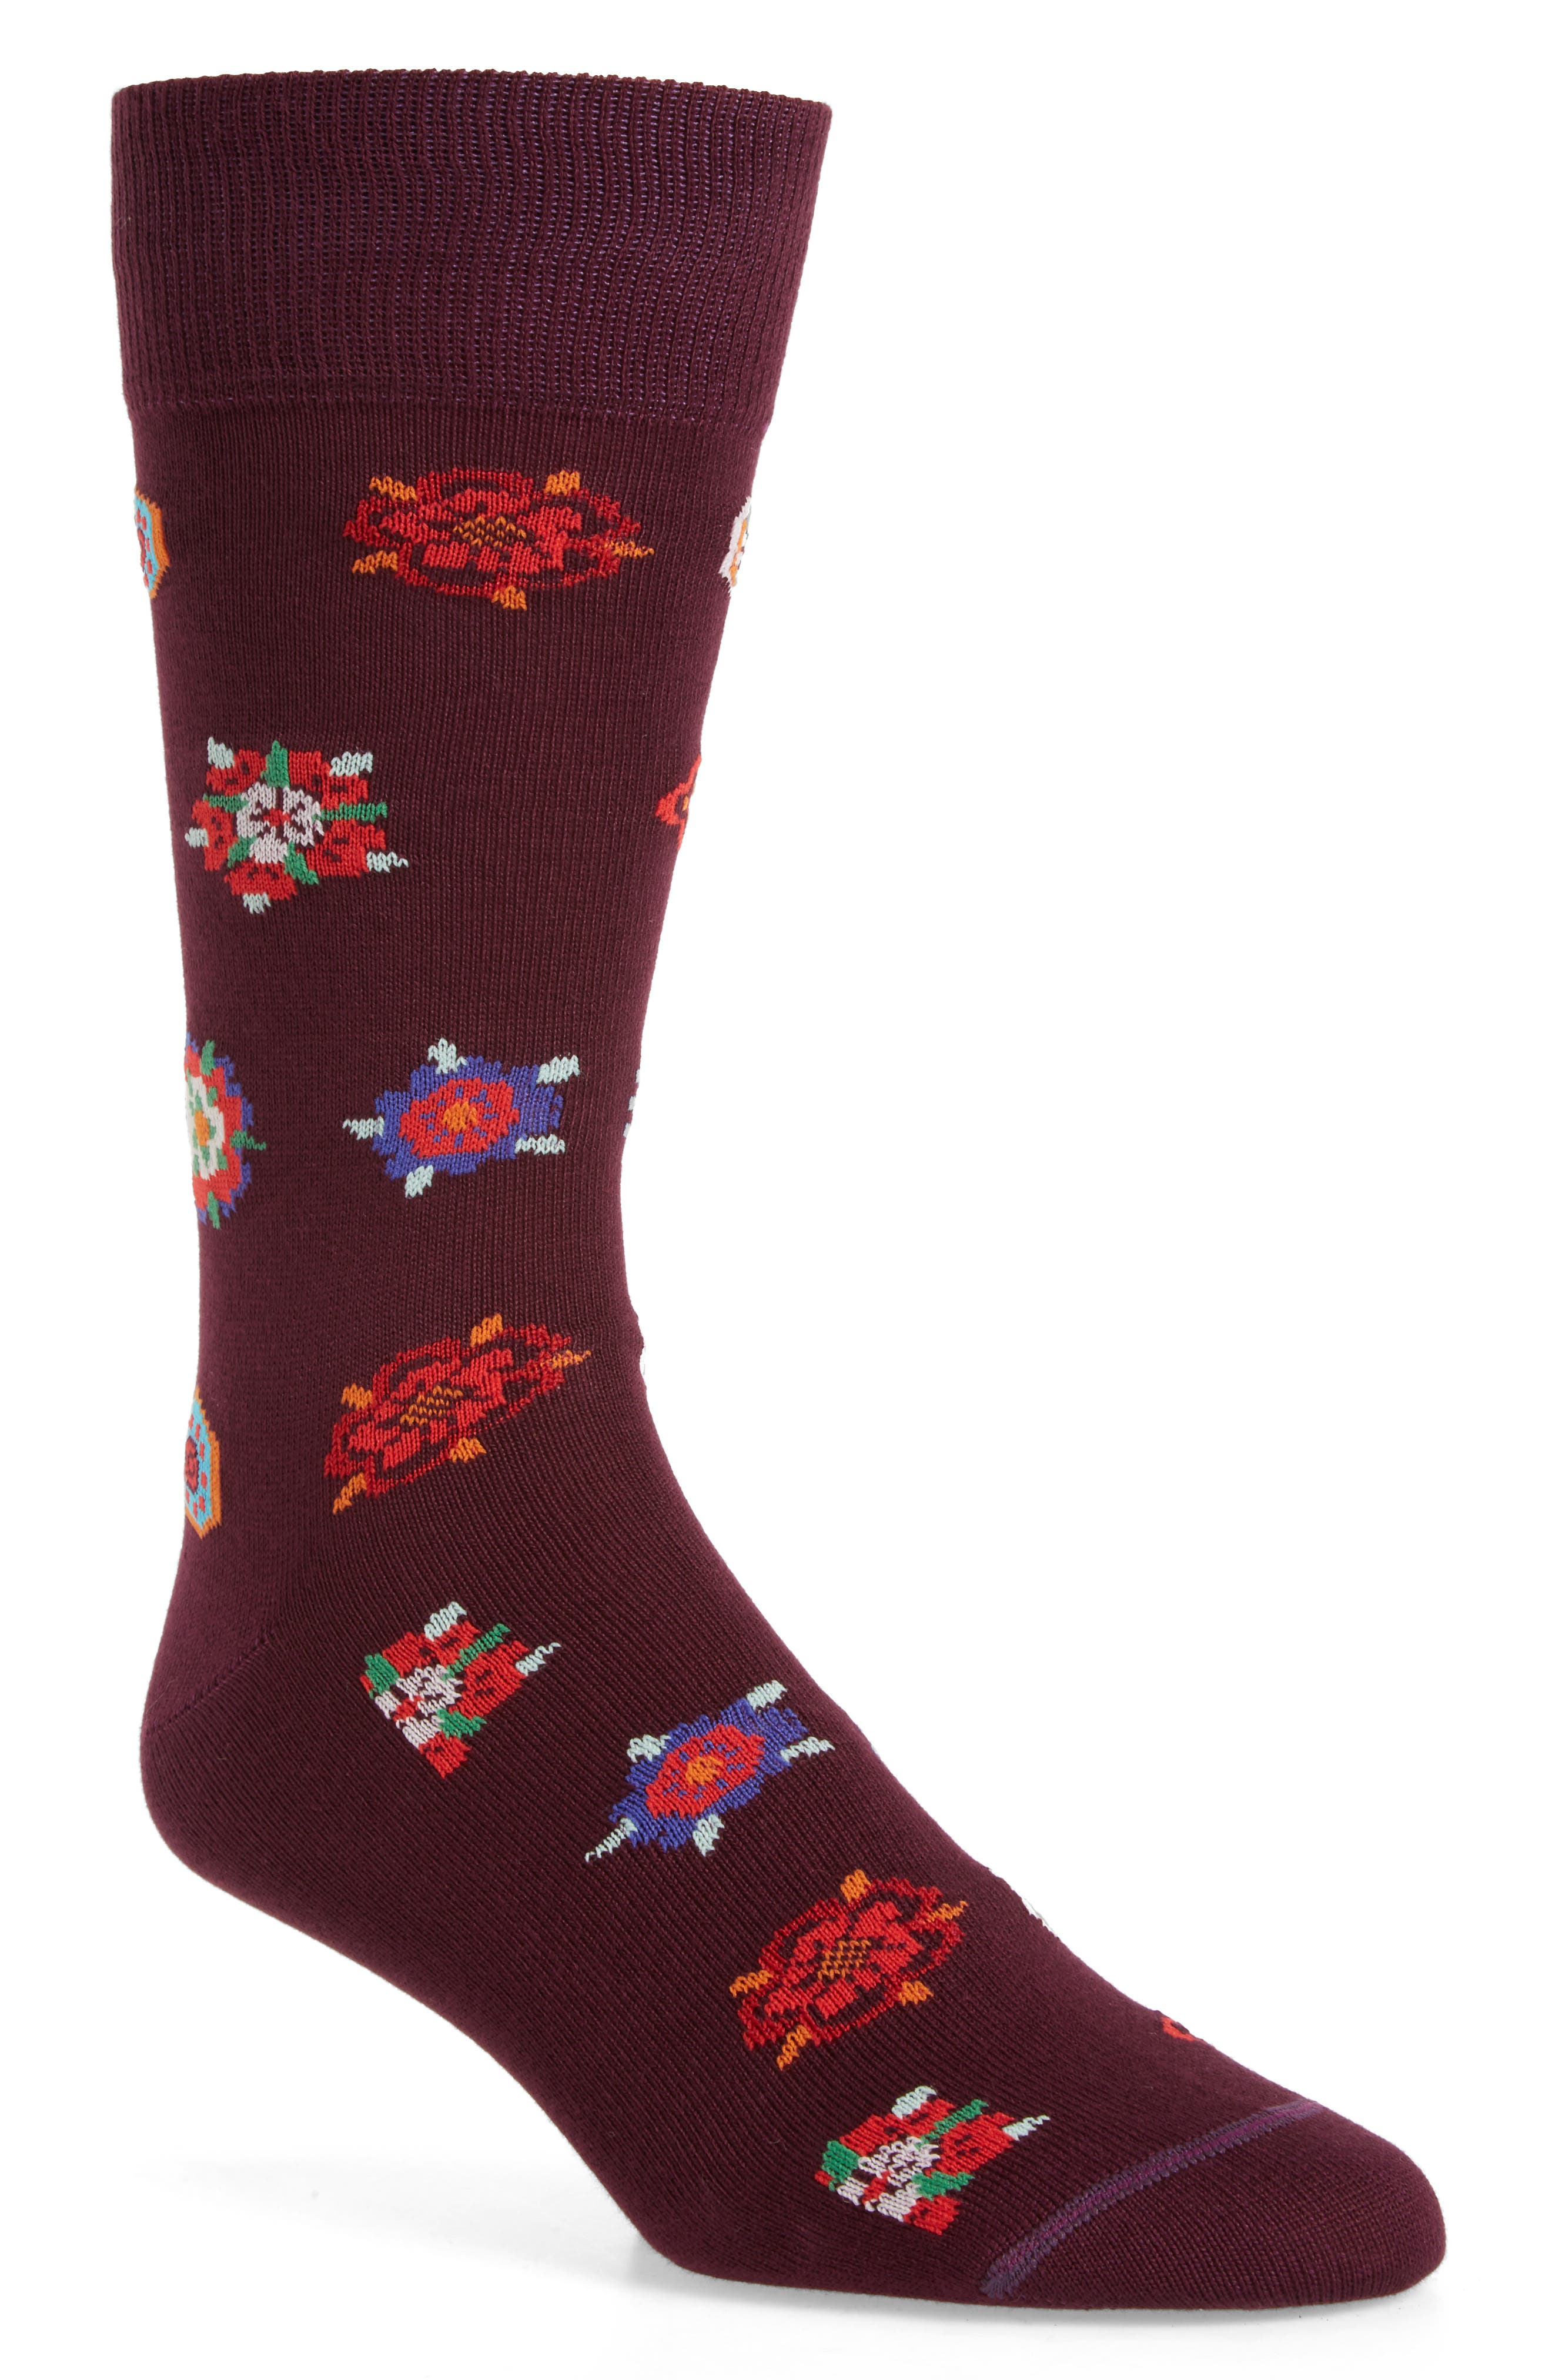 Paul Smith Tudor Rose Socks